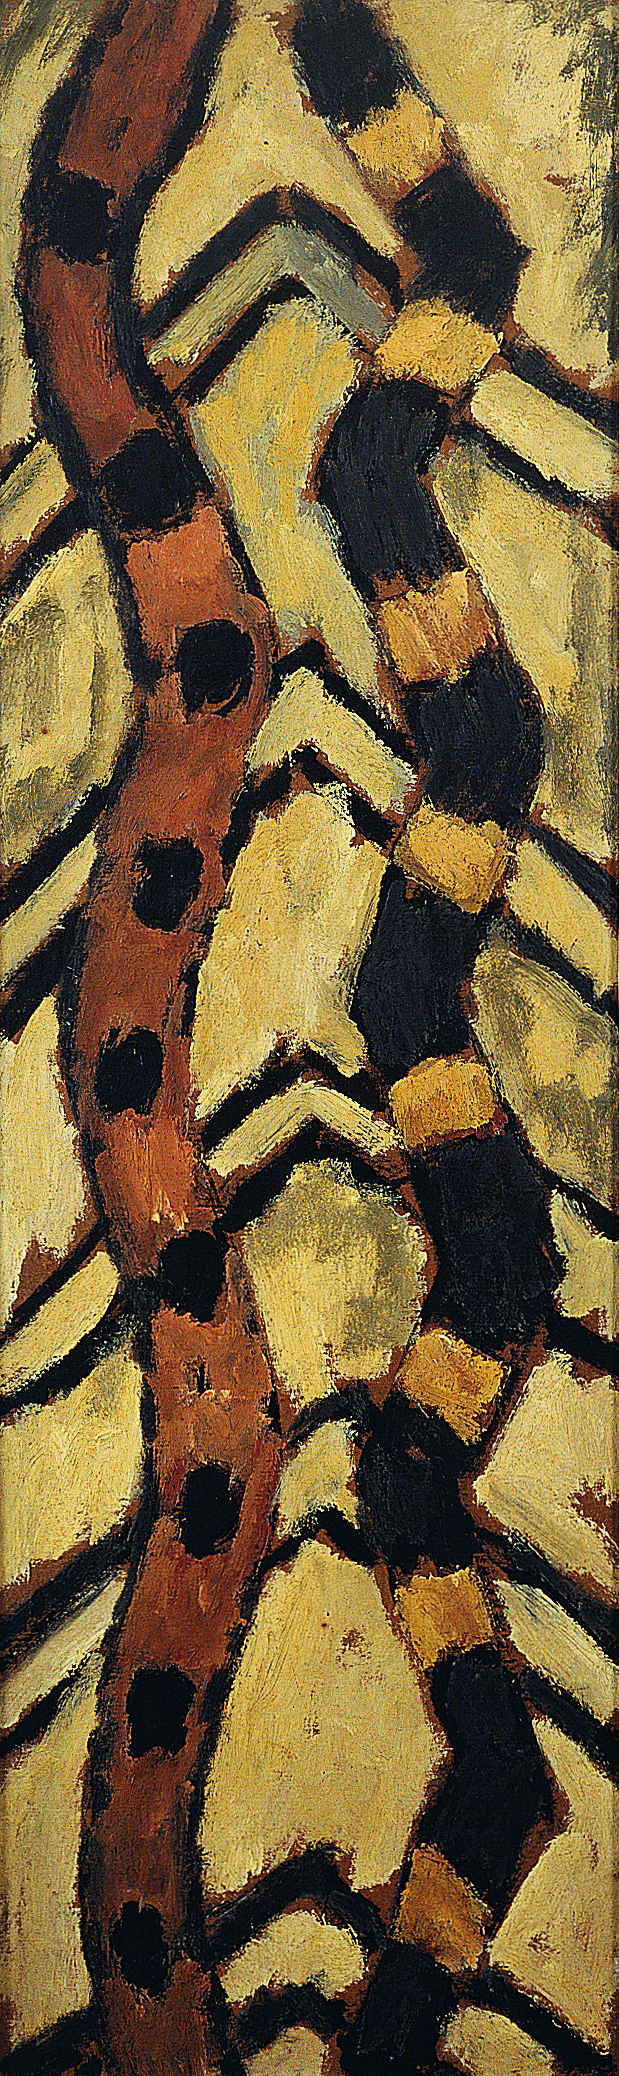 Motif from African Textile I